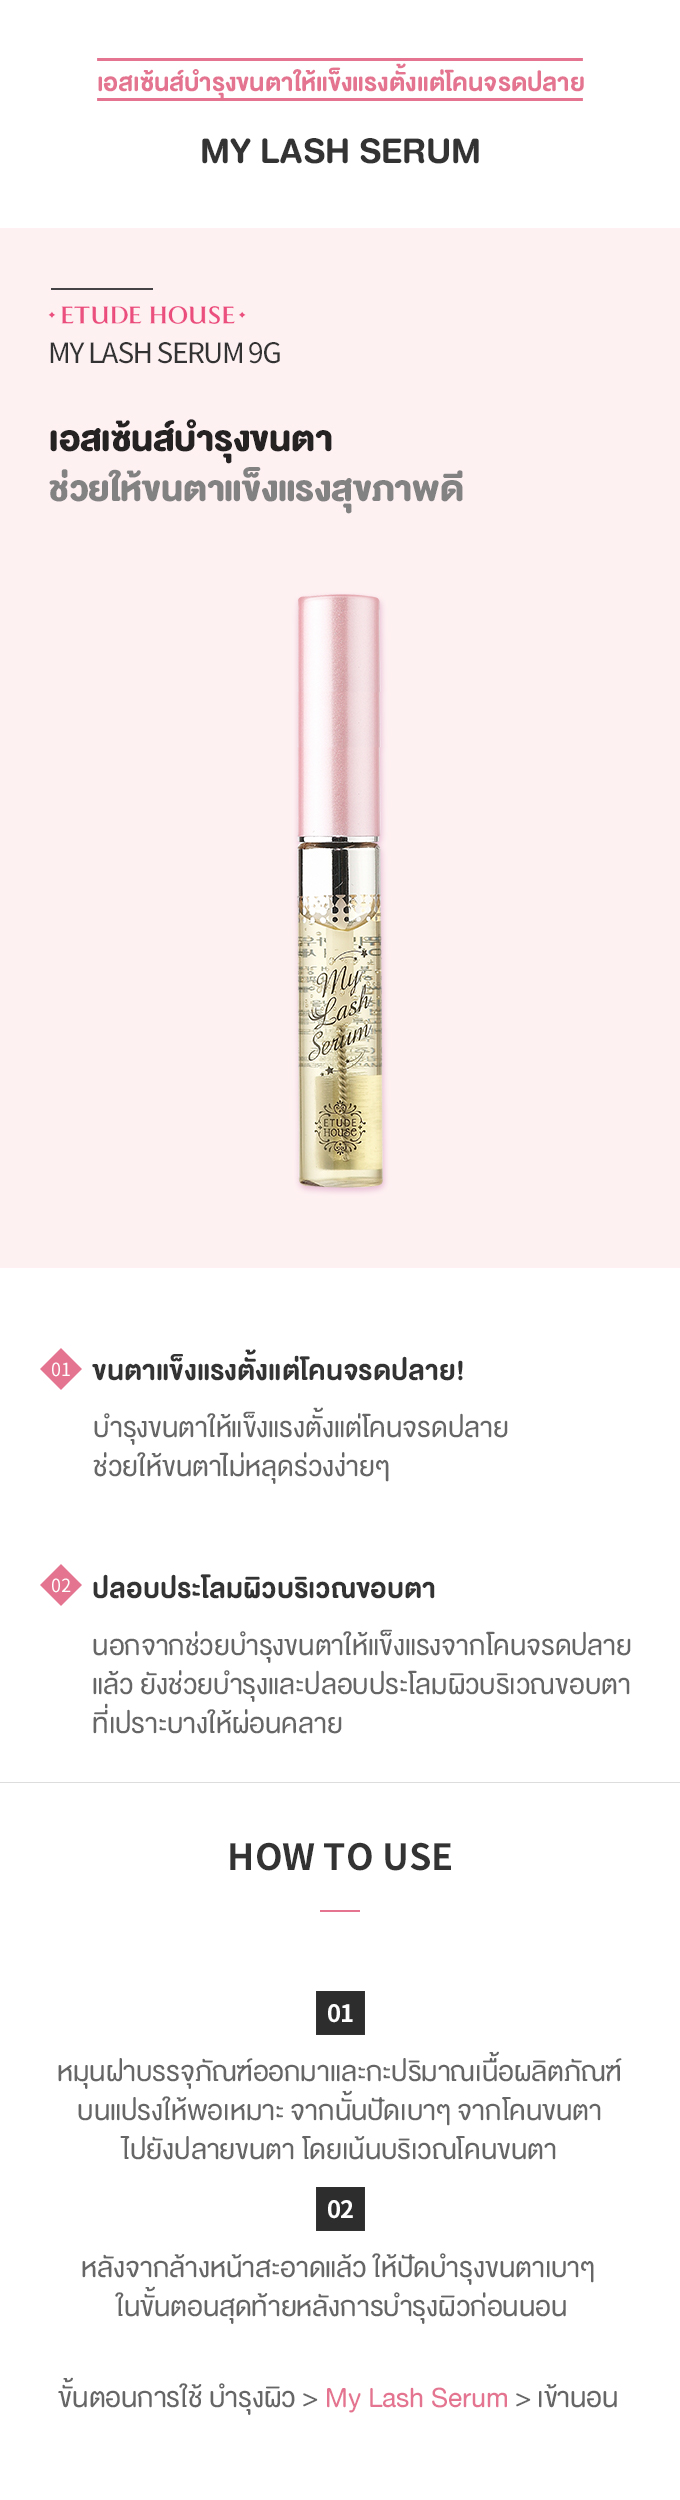 TH1_61_MY LASH SERUM_102002102